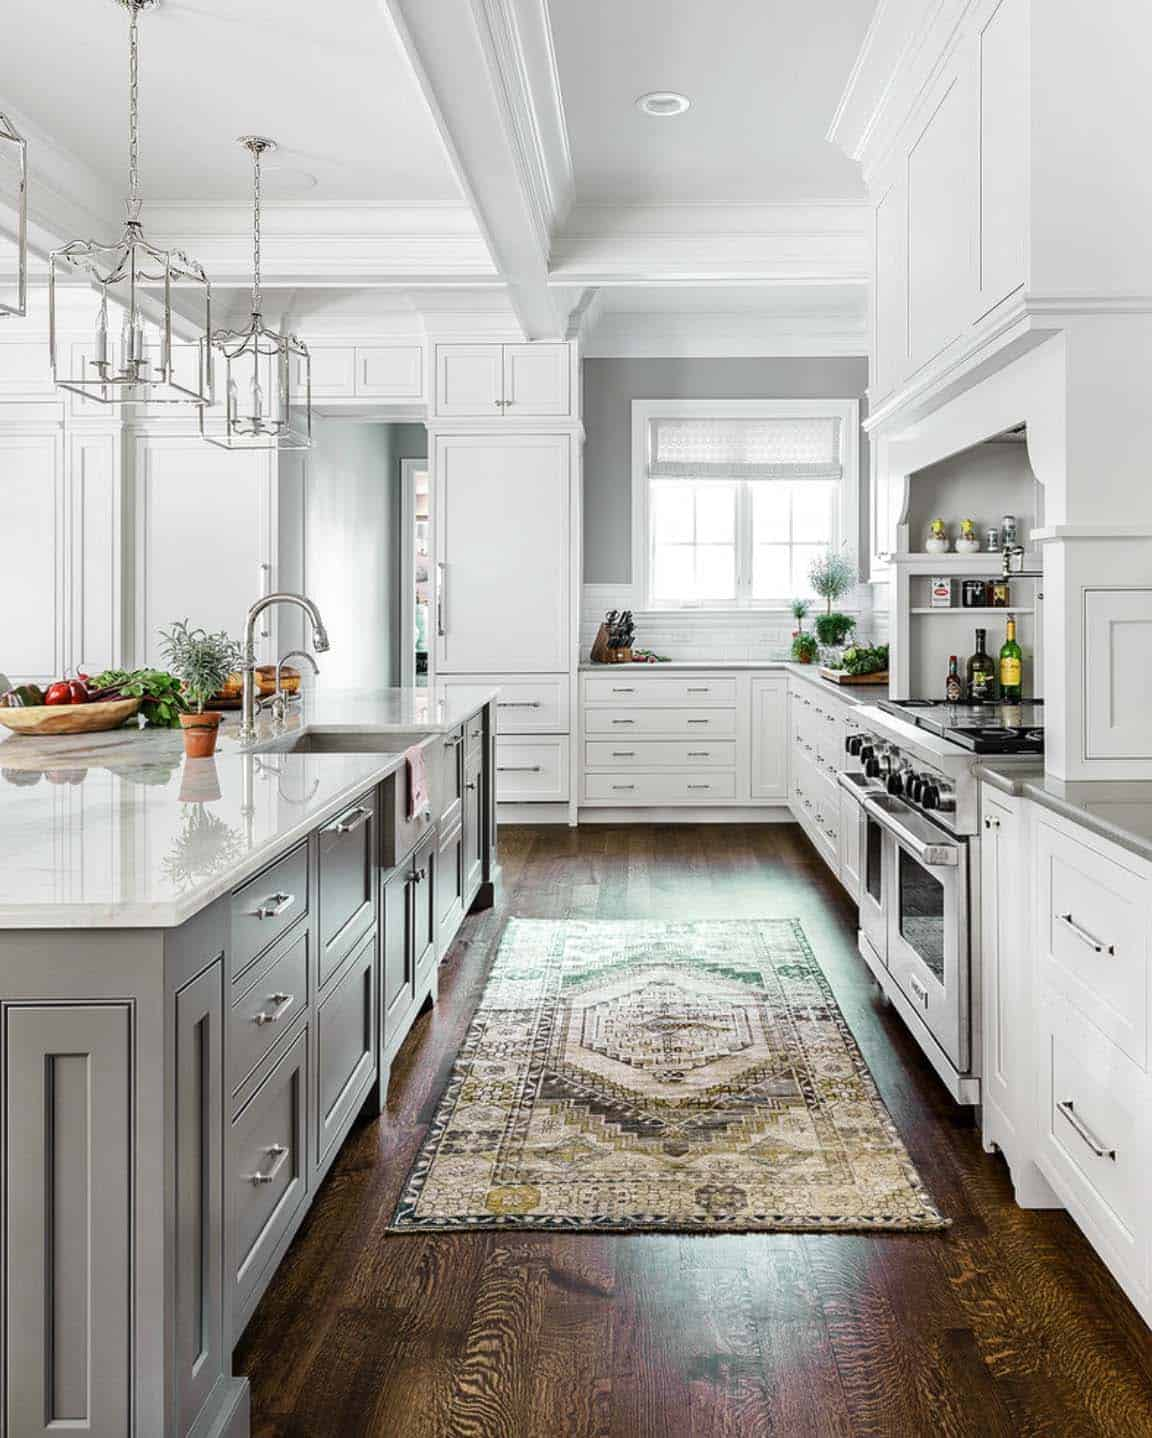 White Kitchen Counter: 30+ Beautiful And Inspiring Light-filled Kitchens With